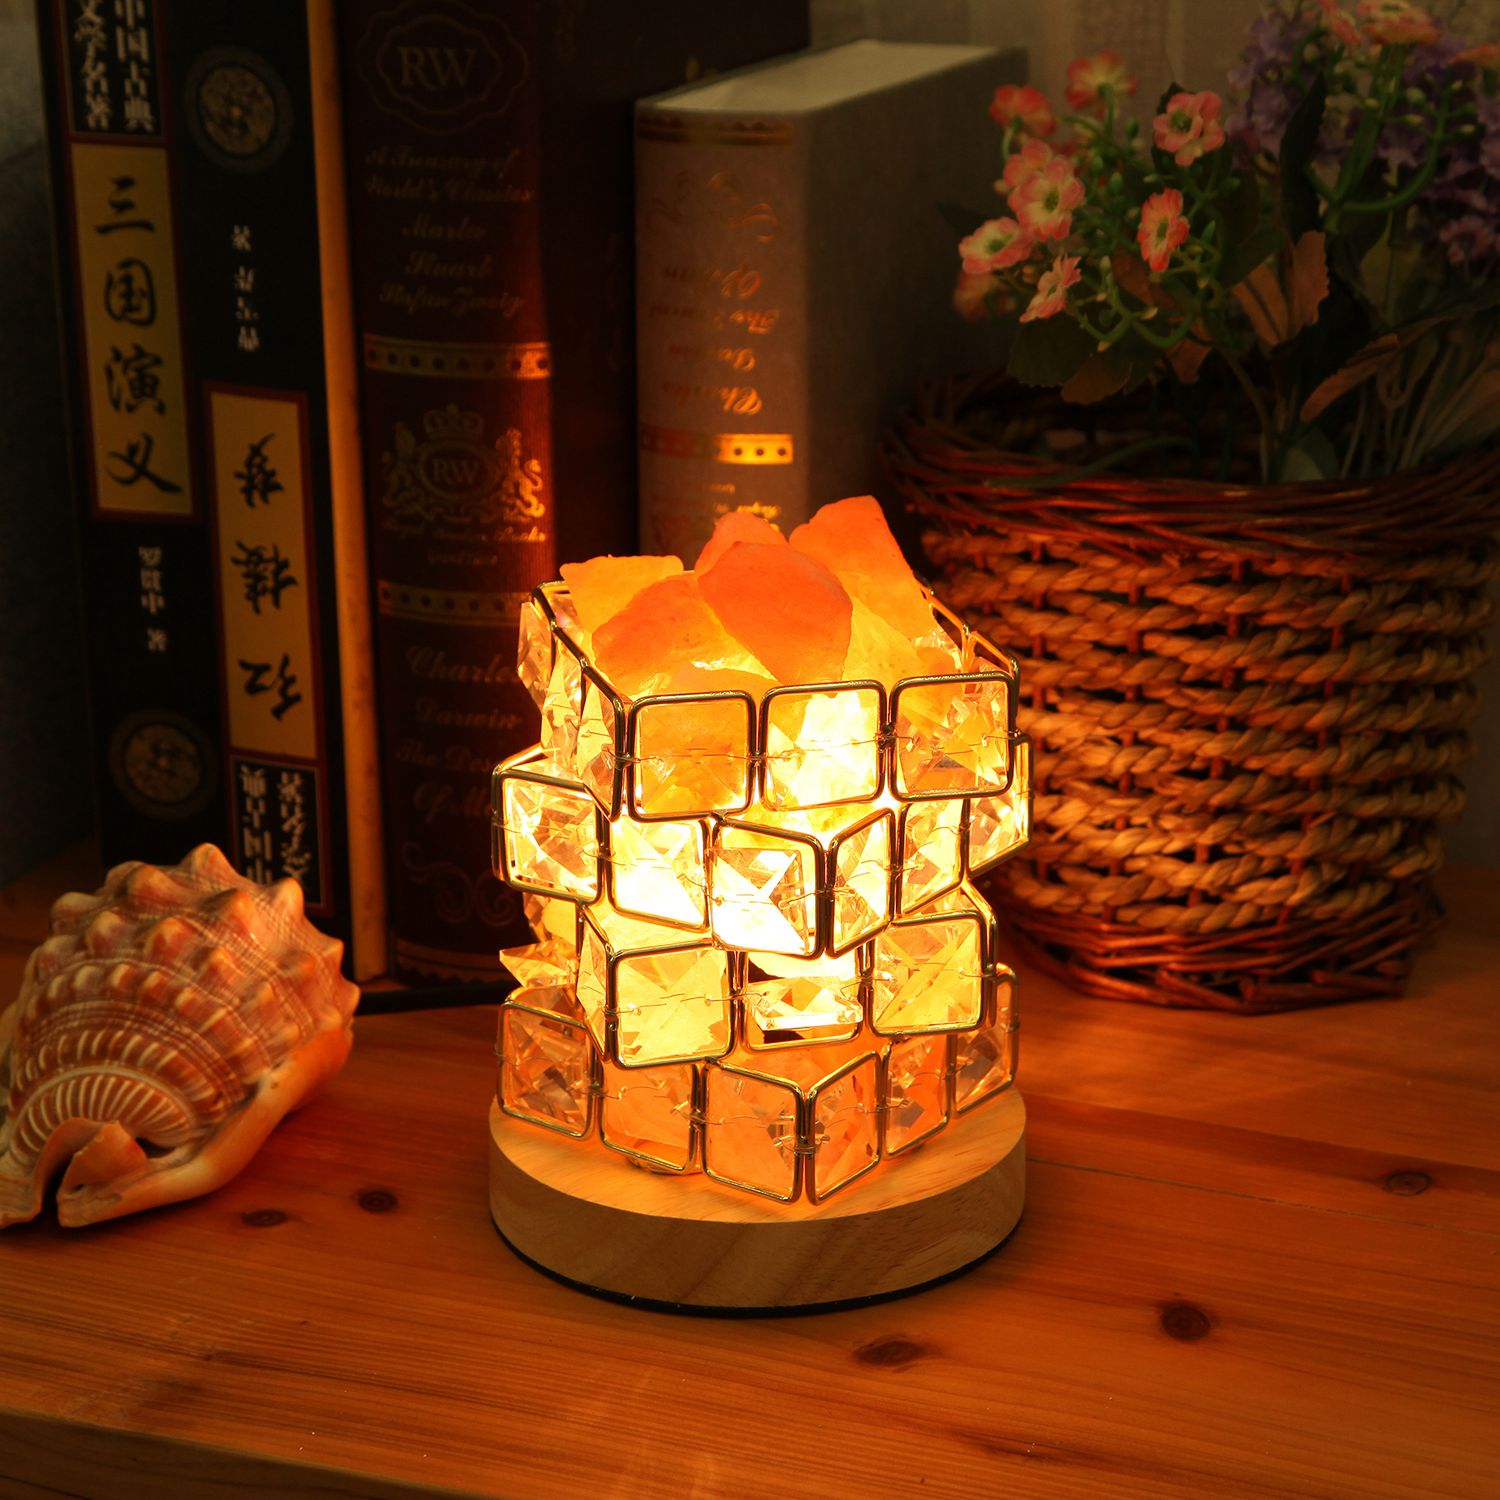 BMBY Himalayan Salt Lamp,Natural Hymalain Salt Rock in Crystal Basket with Dimmer Switch,UL-Listed Cord &Wood Base US Plug rakaposhi natural himalayan salt rock lamp with dimmer switch